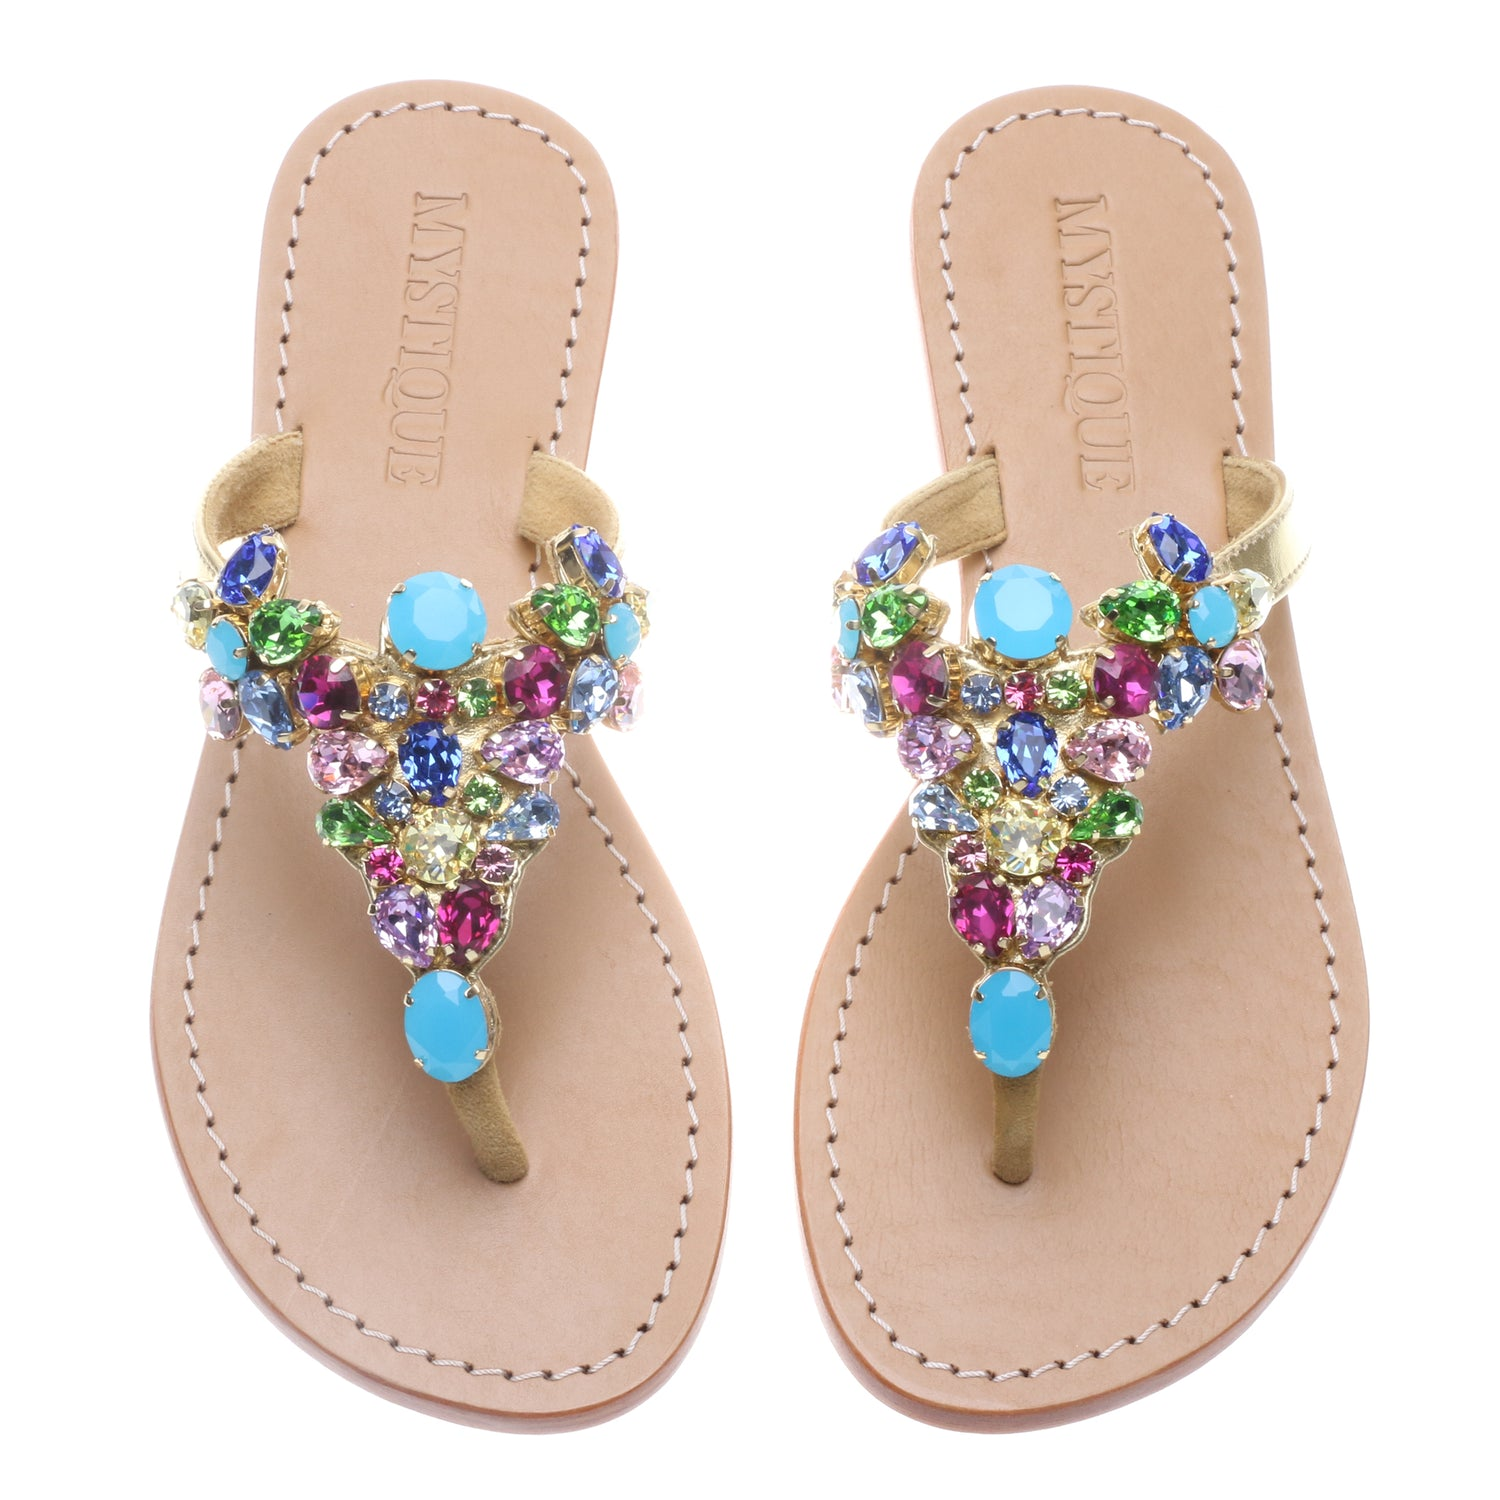 Basel - Mystique Sandals